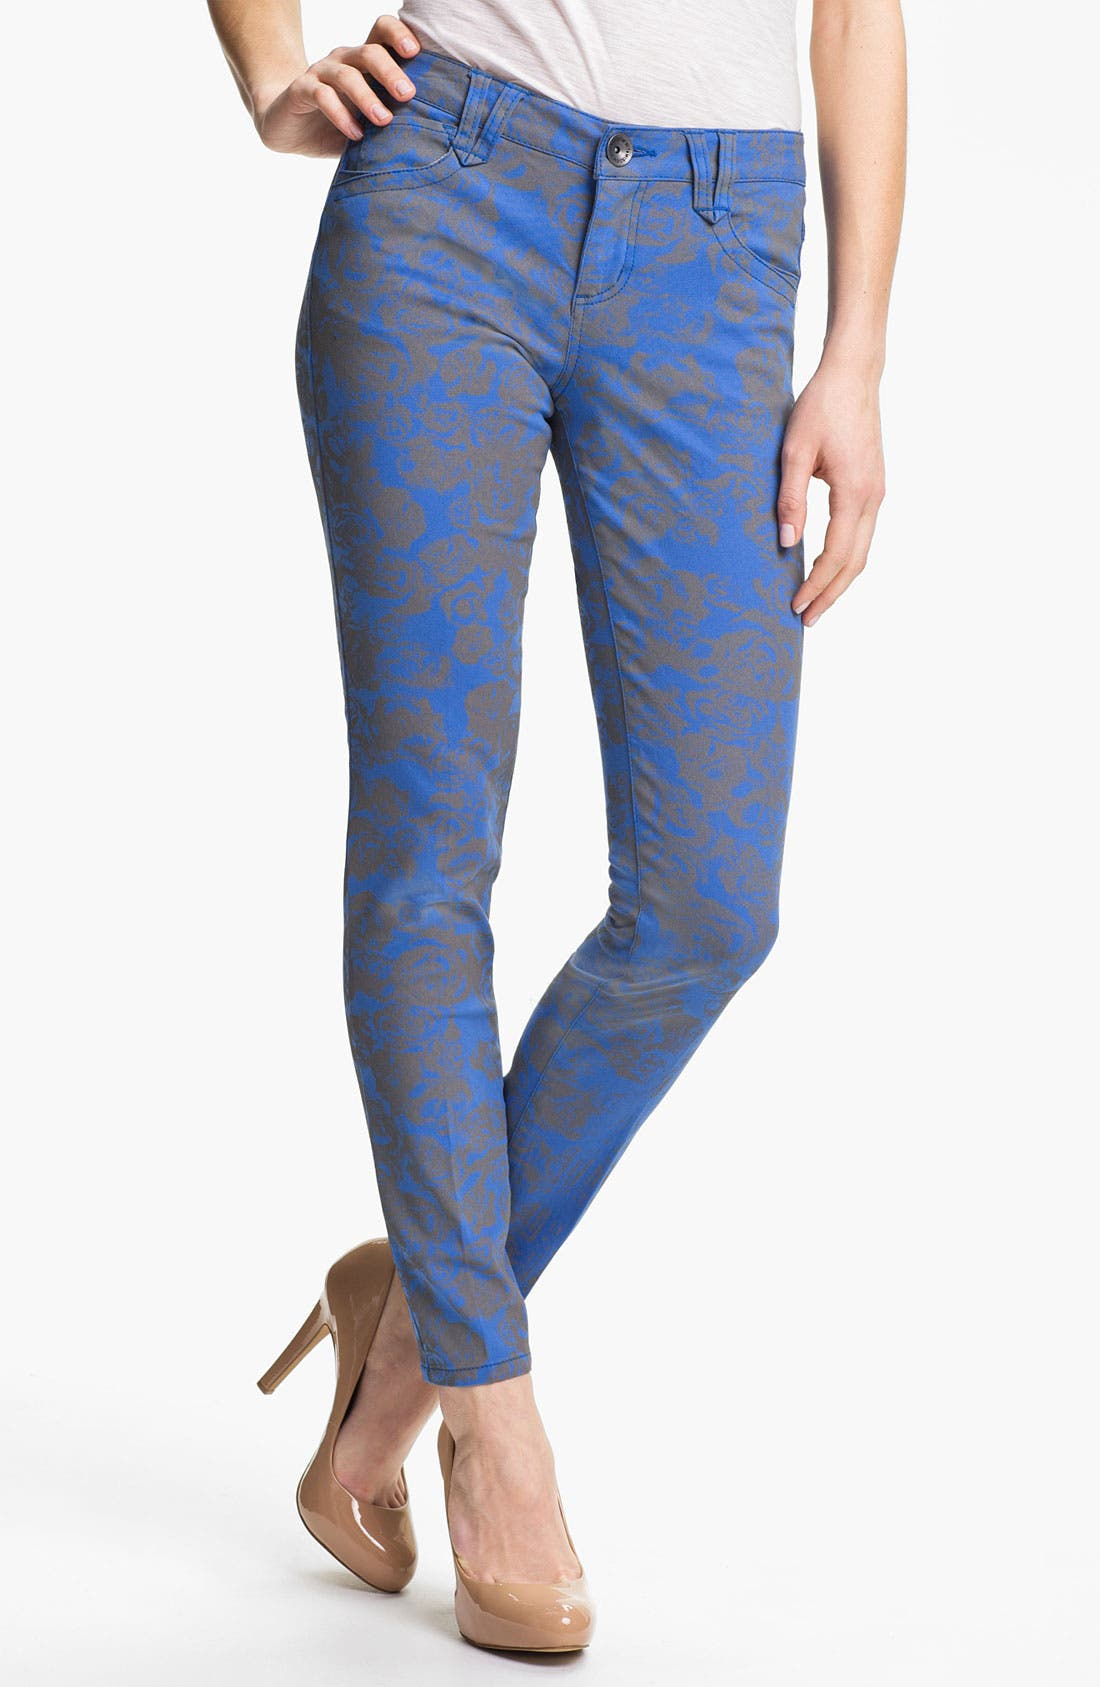 Main Image - Wit & Wisdom Floral Print Skinny Jeans (Indigo) (Nordstrom Exclusive)